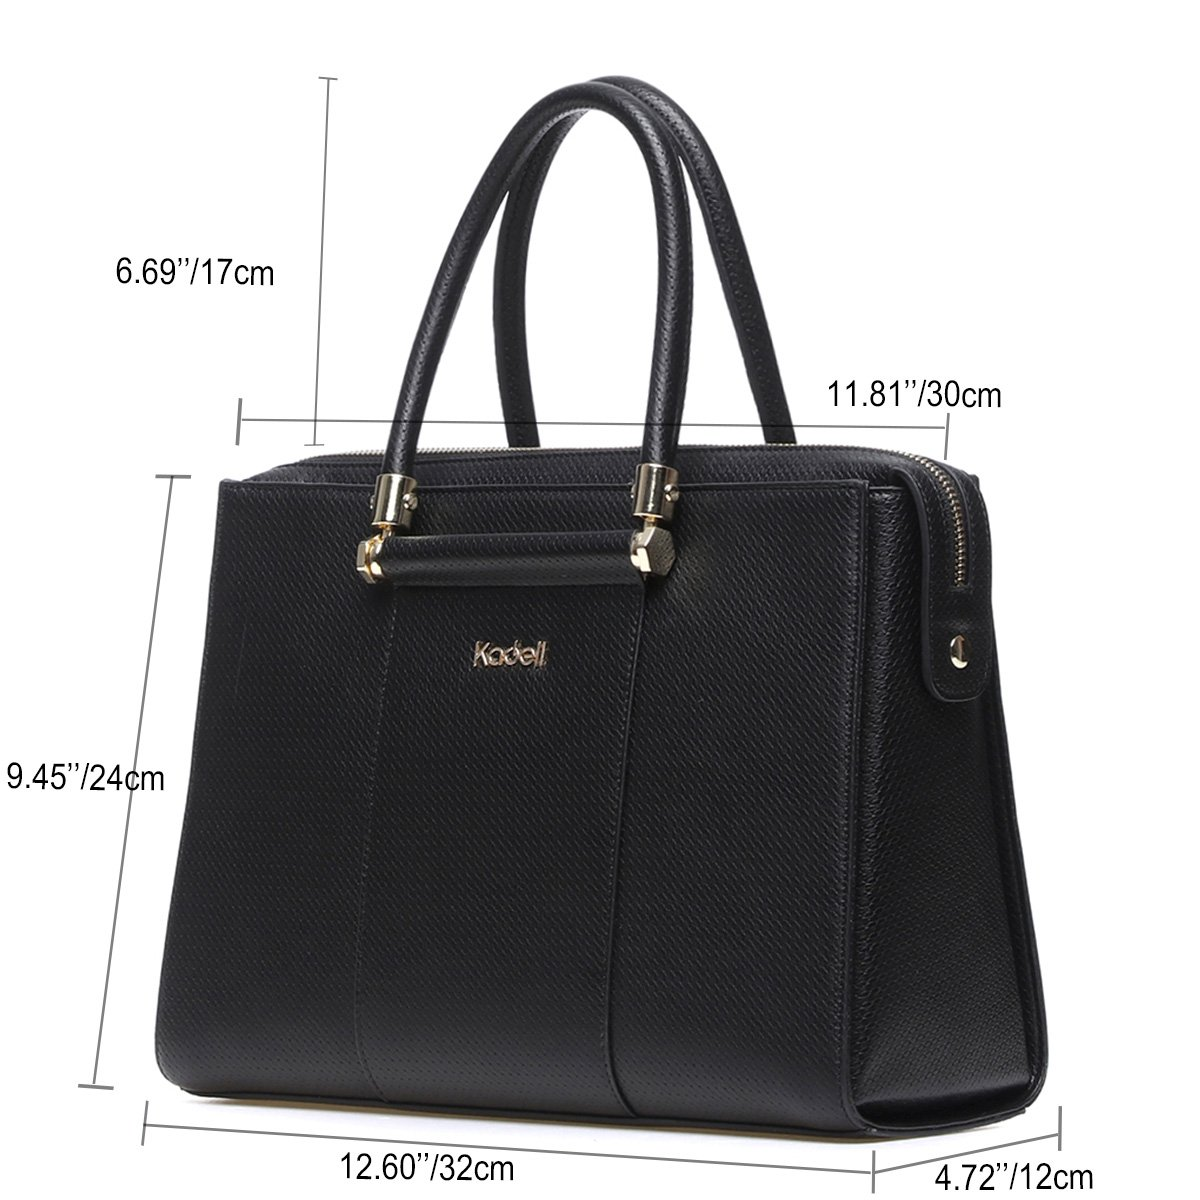 aa4dc25d2b1ffa Kadell Women Luxury Leather Designer Handbags Top Handle Purse for Ladies  Shoulder Bag Black: Handbags: Amazon.com